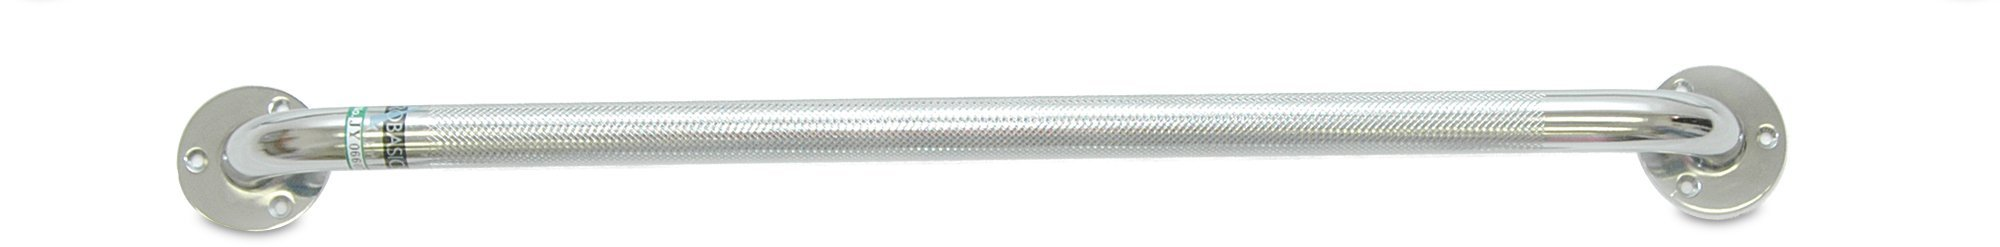 "Chrome Knurled Grab Bar, 18"", 250lb Weight Capacity - US MED REHAB"